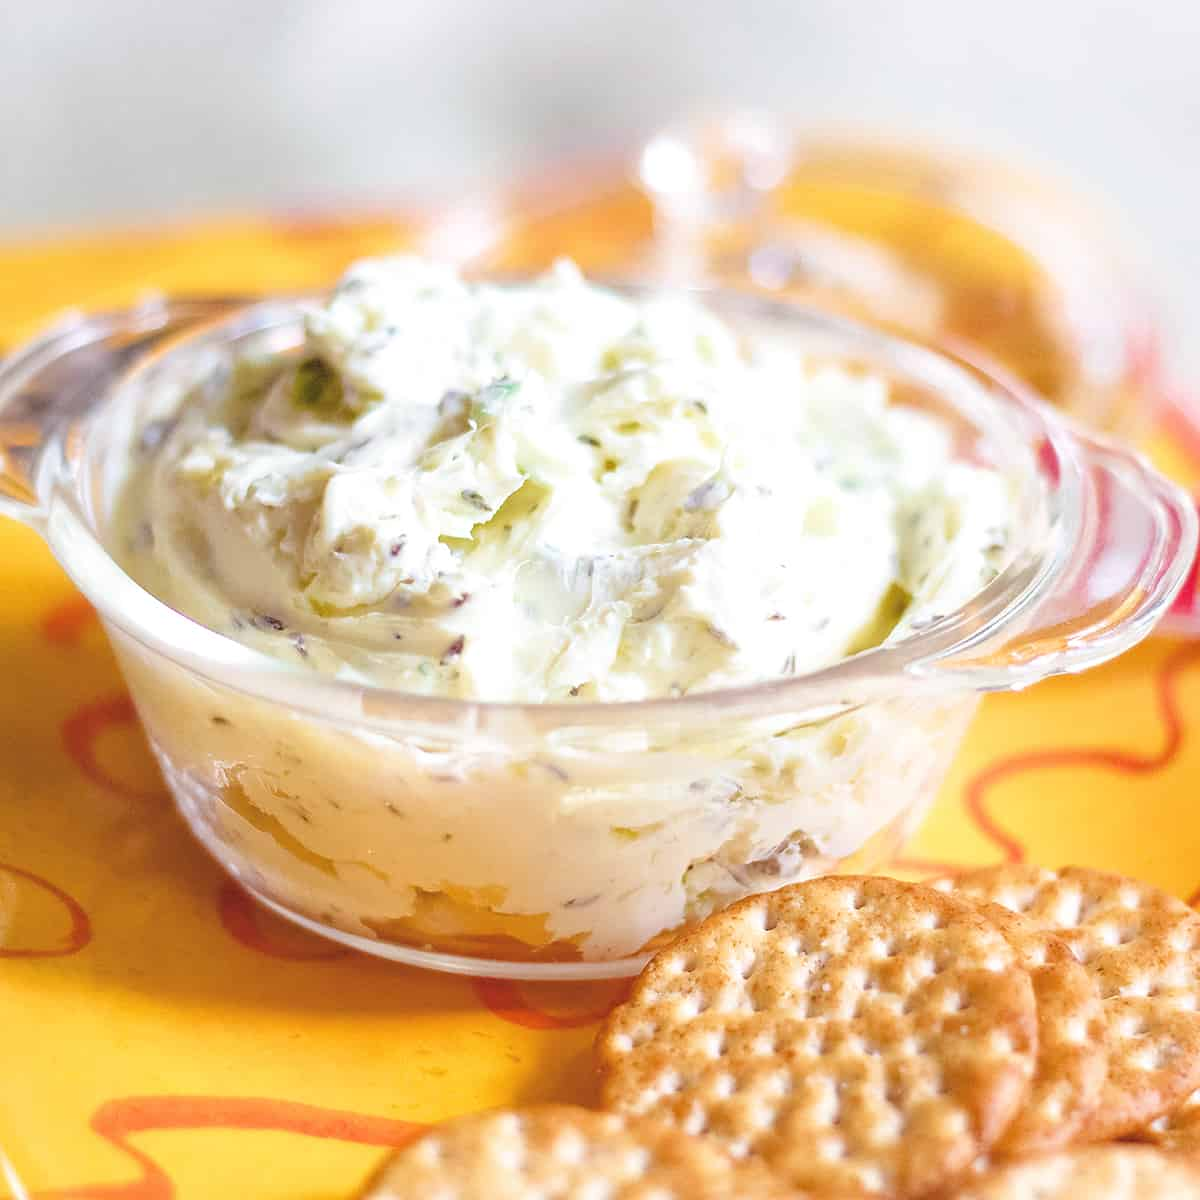 Caraway Cheese Spread in a glass serving bowl with crackers in the foreground.